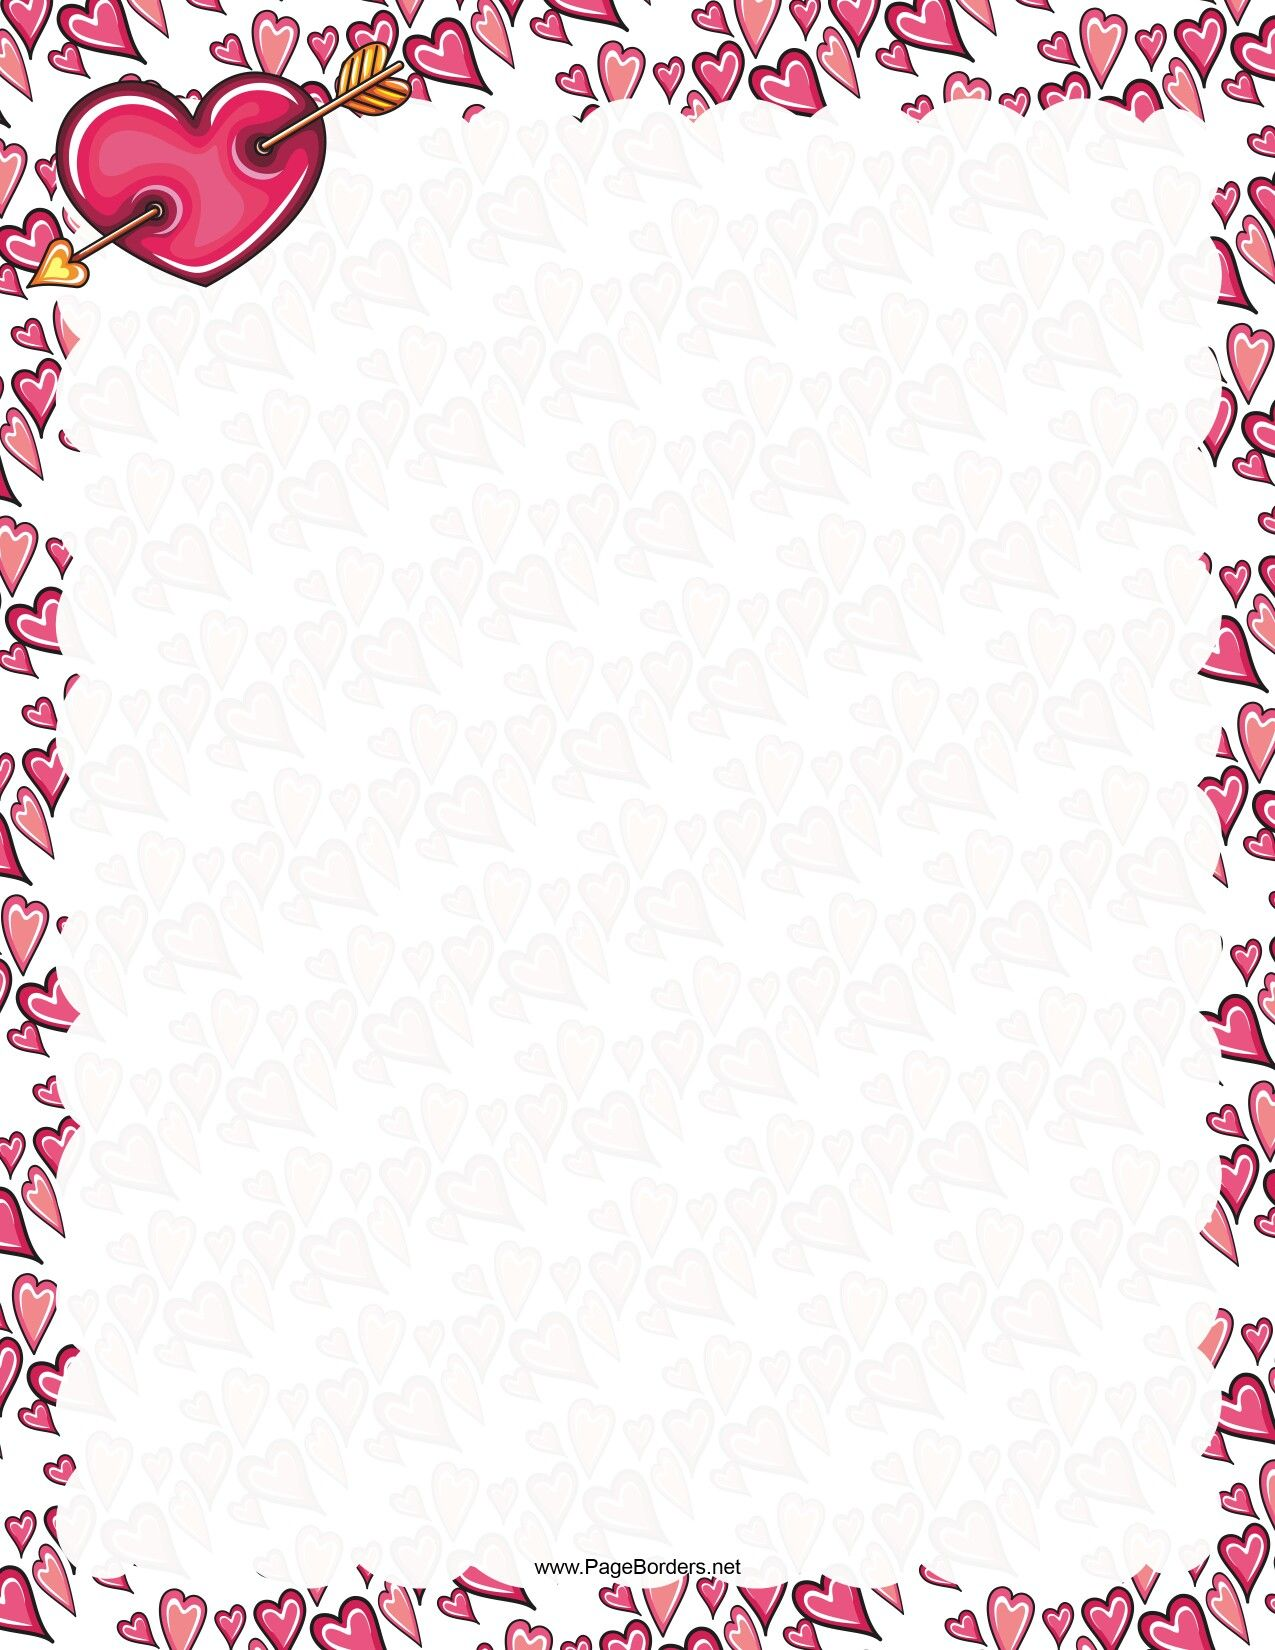 Celebrate Valentineu0027s Day With This Printable Romantic Border Adorned Withu2026  Printable Bordered Paper Designs Free